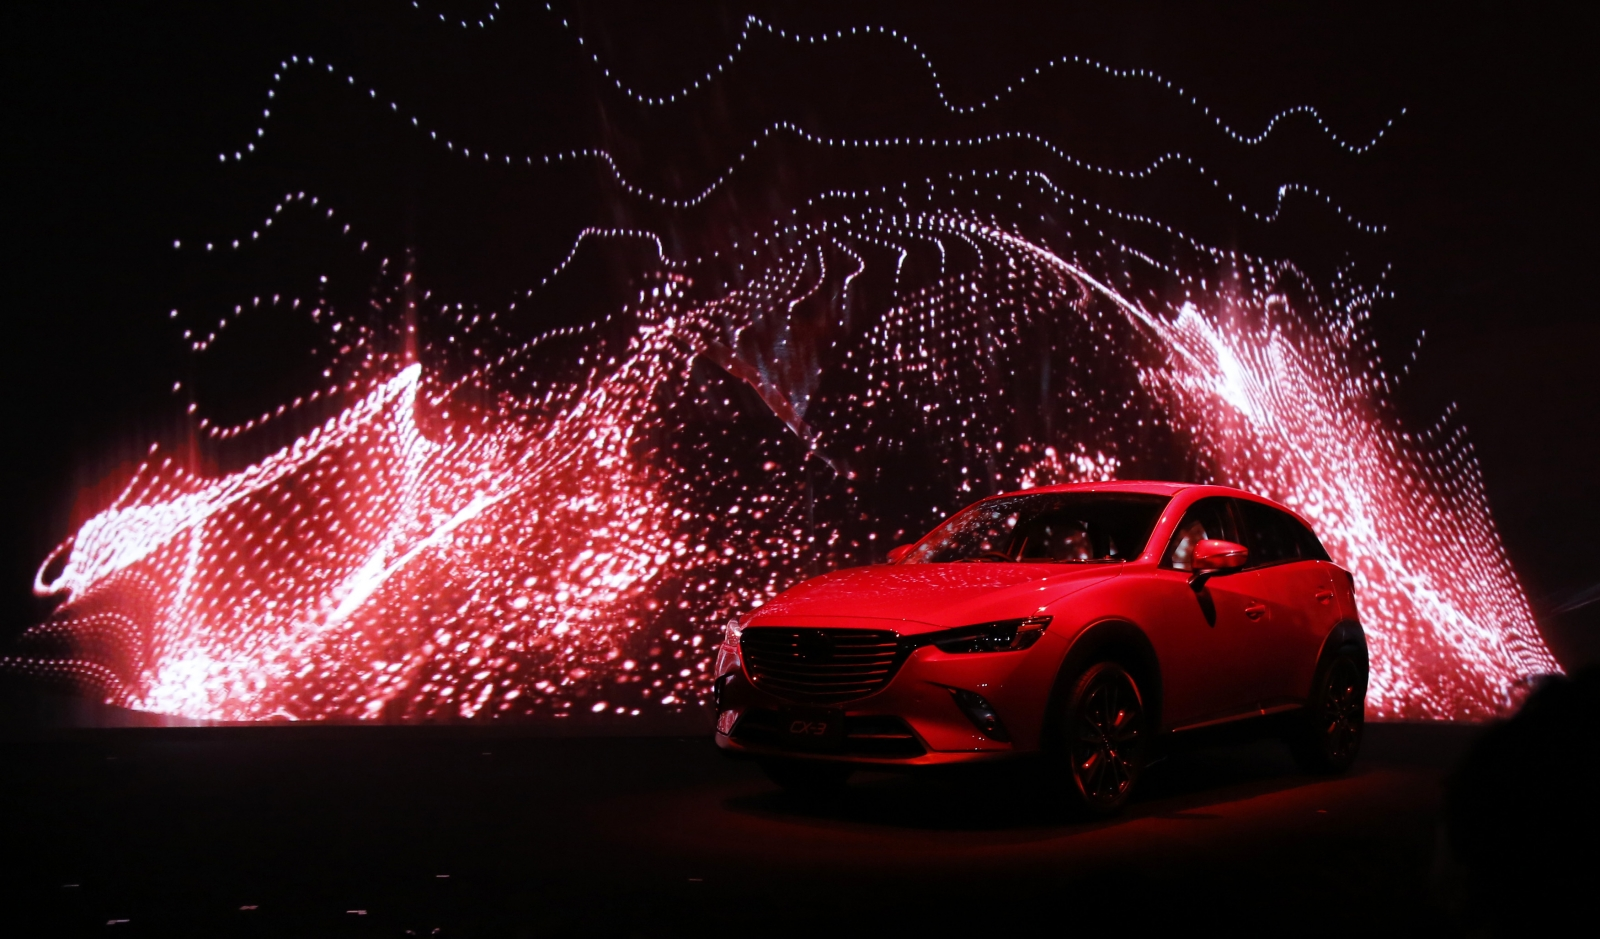 Can Mazda cars be hacked? Software flaws allow hackers to gain control of some cars via USB sticksCan Mazda cars be hacked? Software flaws allow hackers to gain control of some cars via USB sticks - 웹